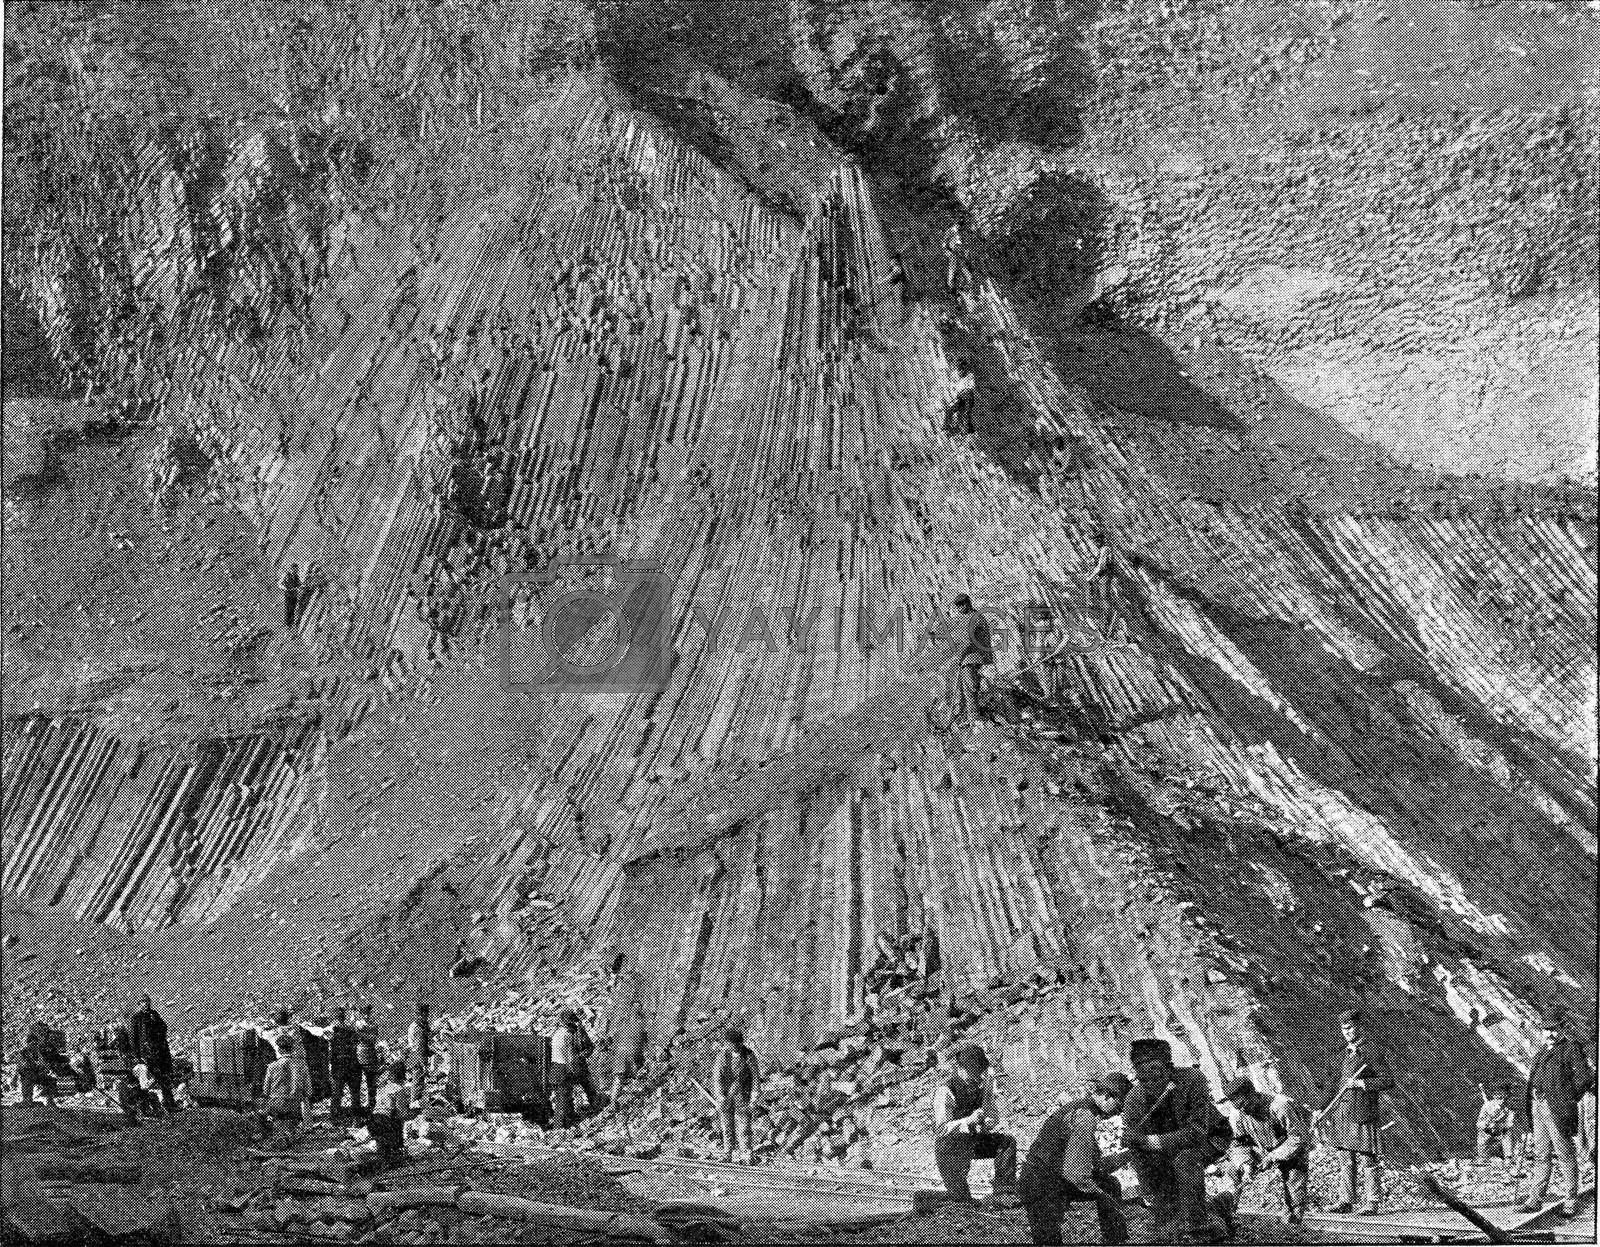 Royalty free image of Basalt extraction on the banks of the Rhine, vintage engraving. by Morphart